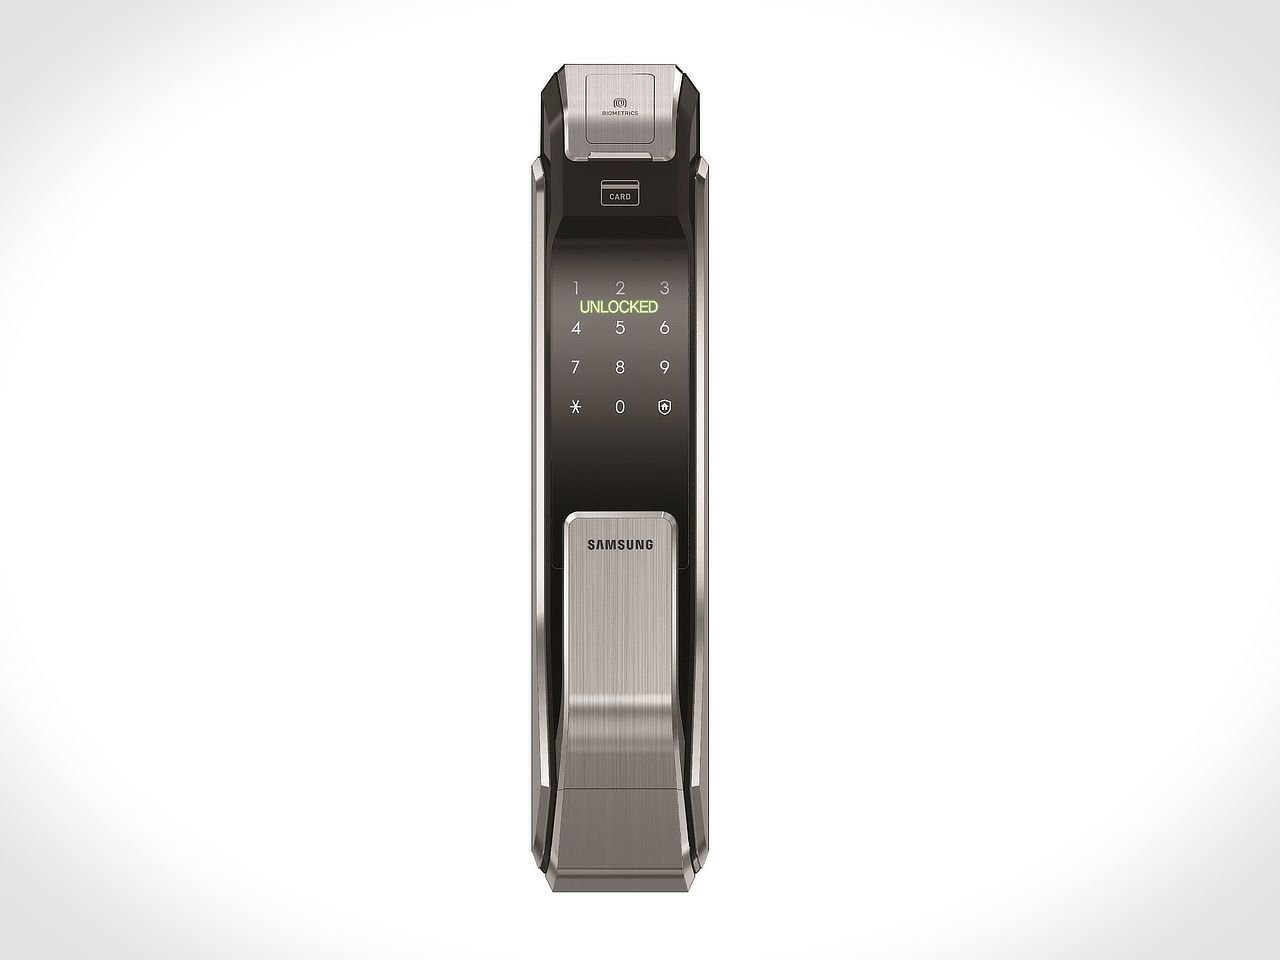 samsung-biometric-lock-002